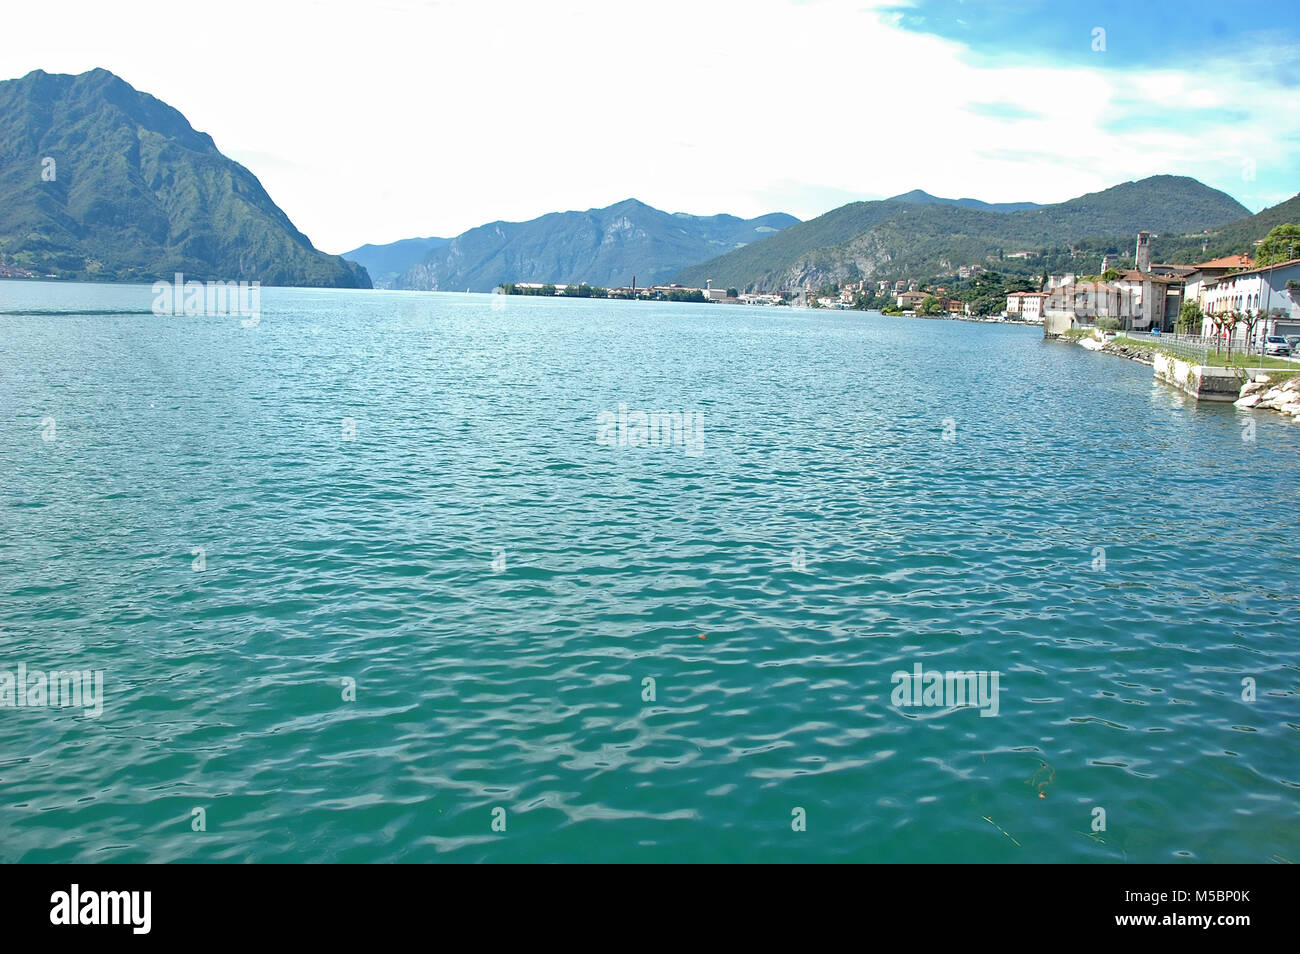 Darfo on the northern end of Lake Iseo in northern Italy, on a calm summer's day - Stock Image